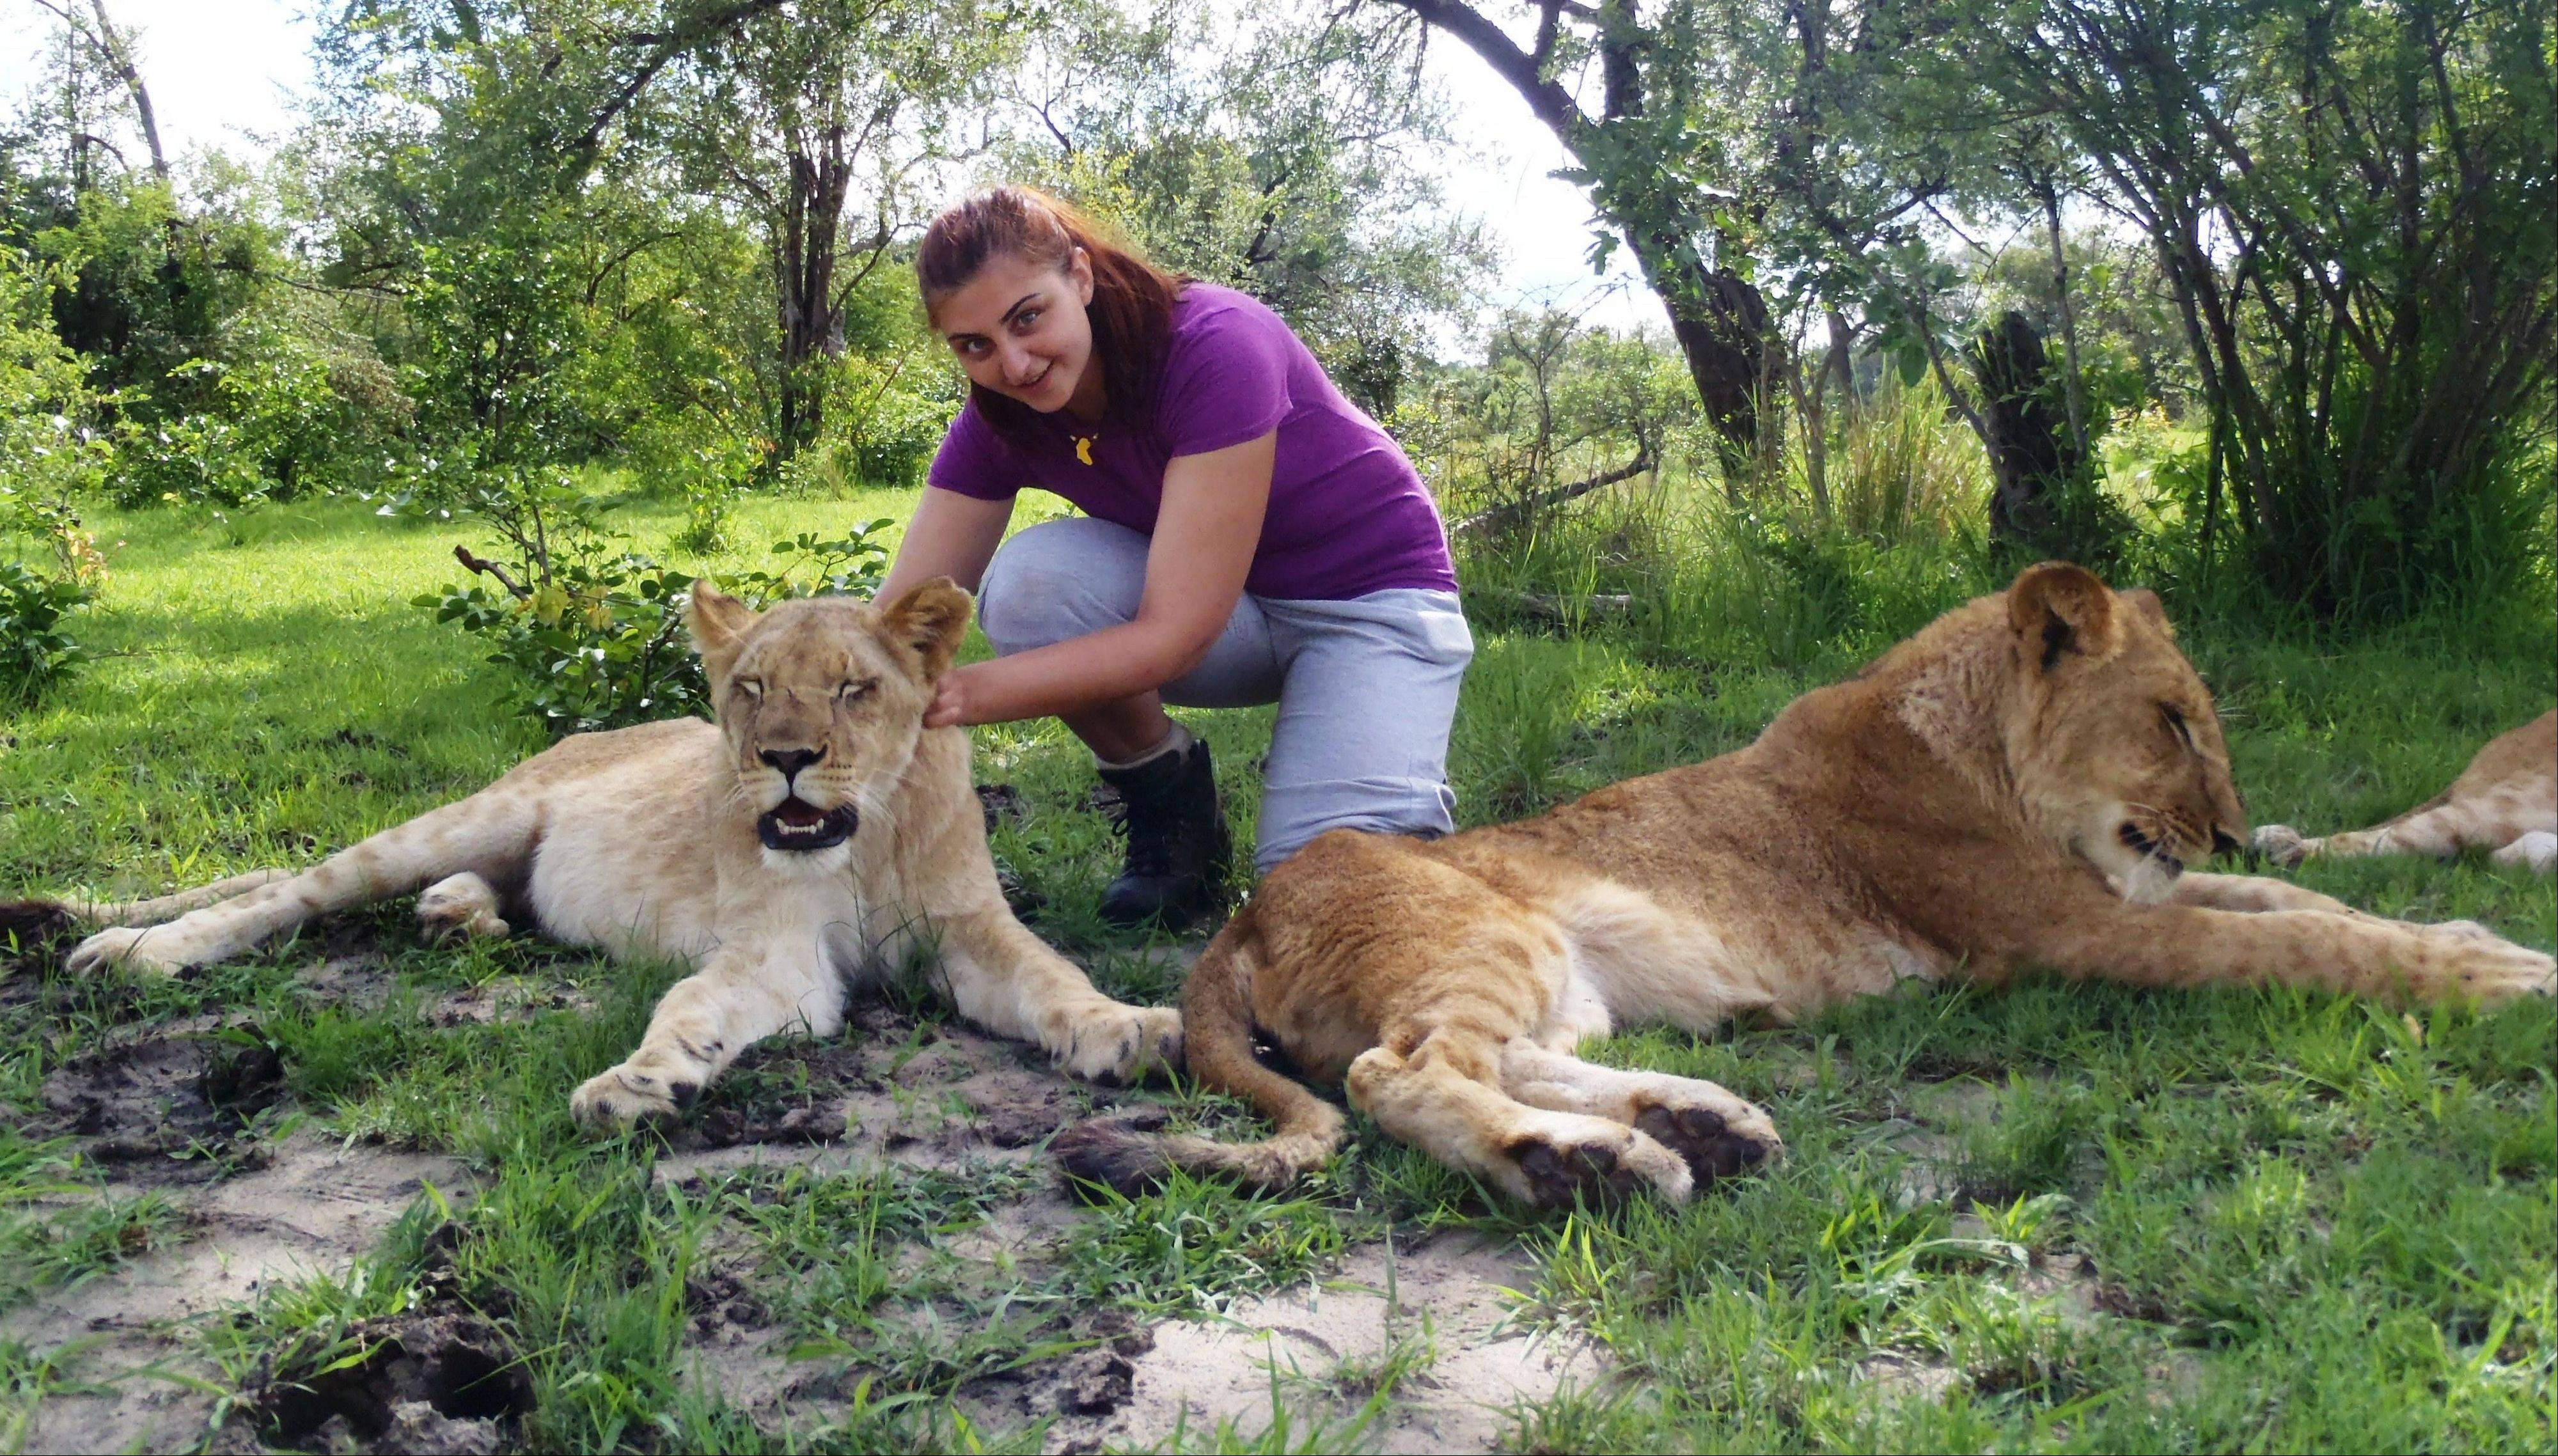 Dana de Grazia helped raise lion cubs as part of her volunteer work with the African Lion and Environmental Research Trust in Zambia.